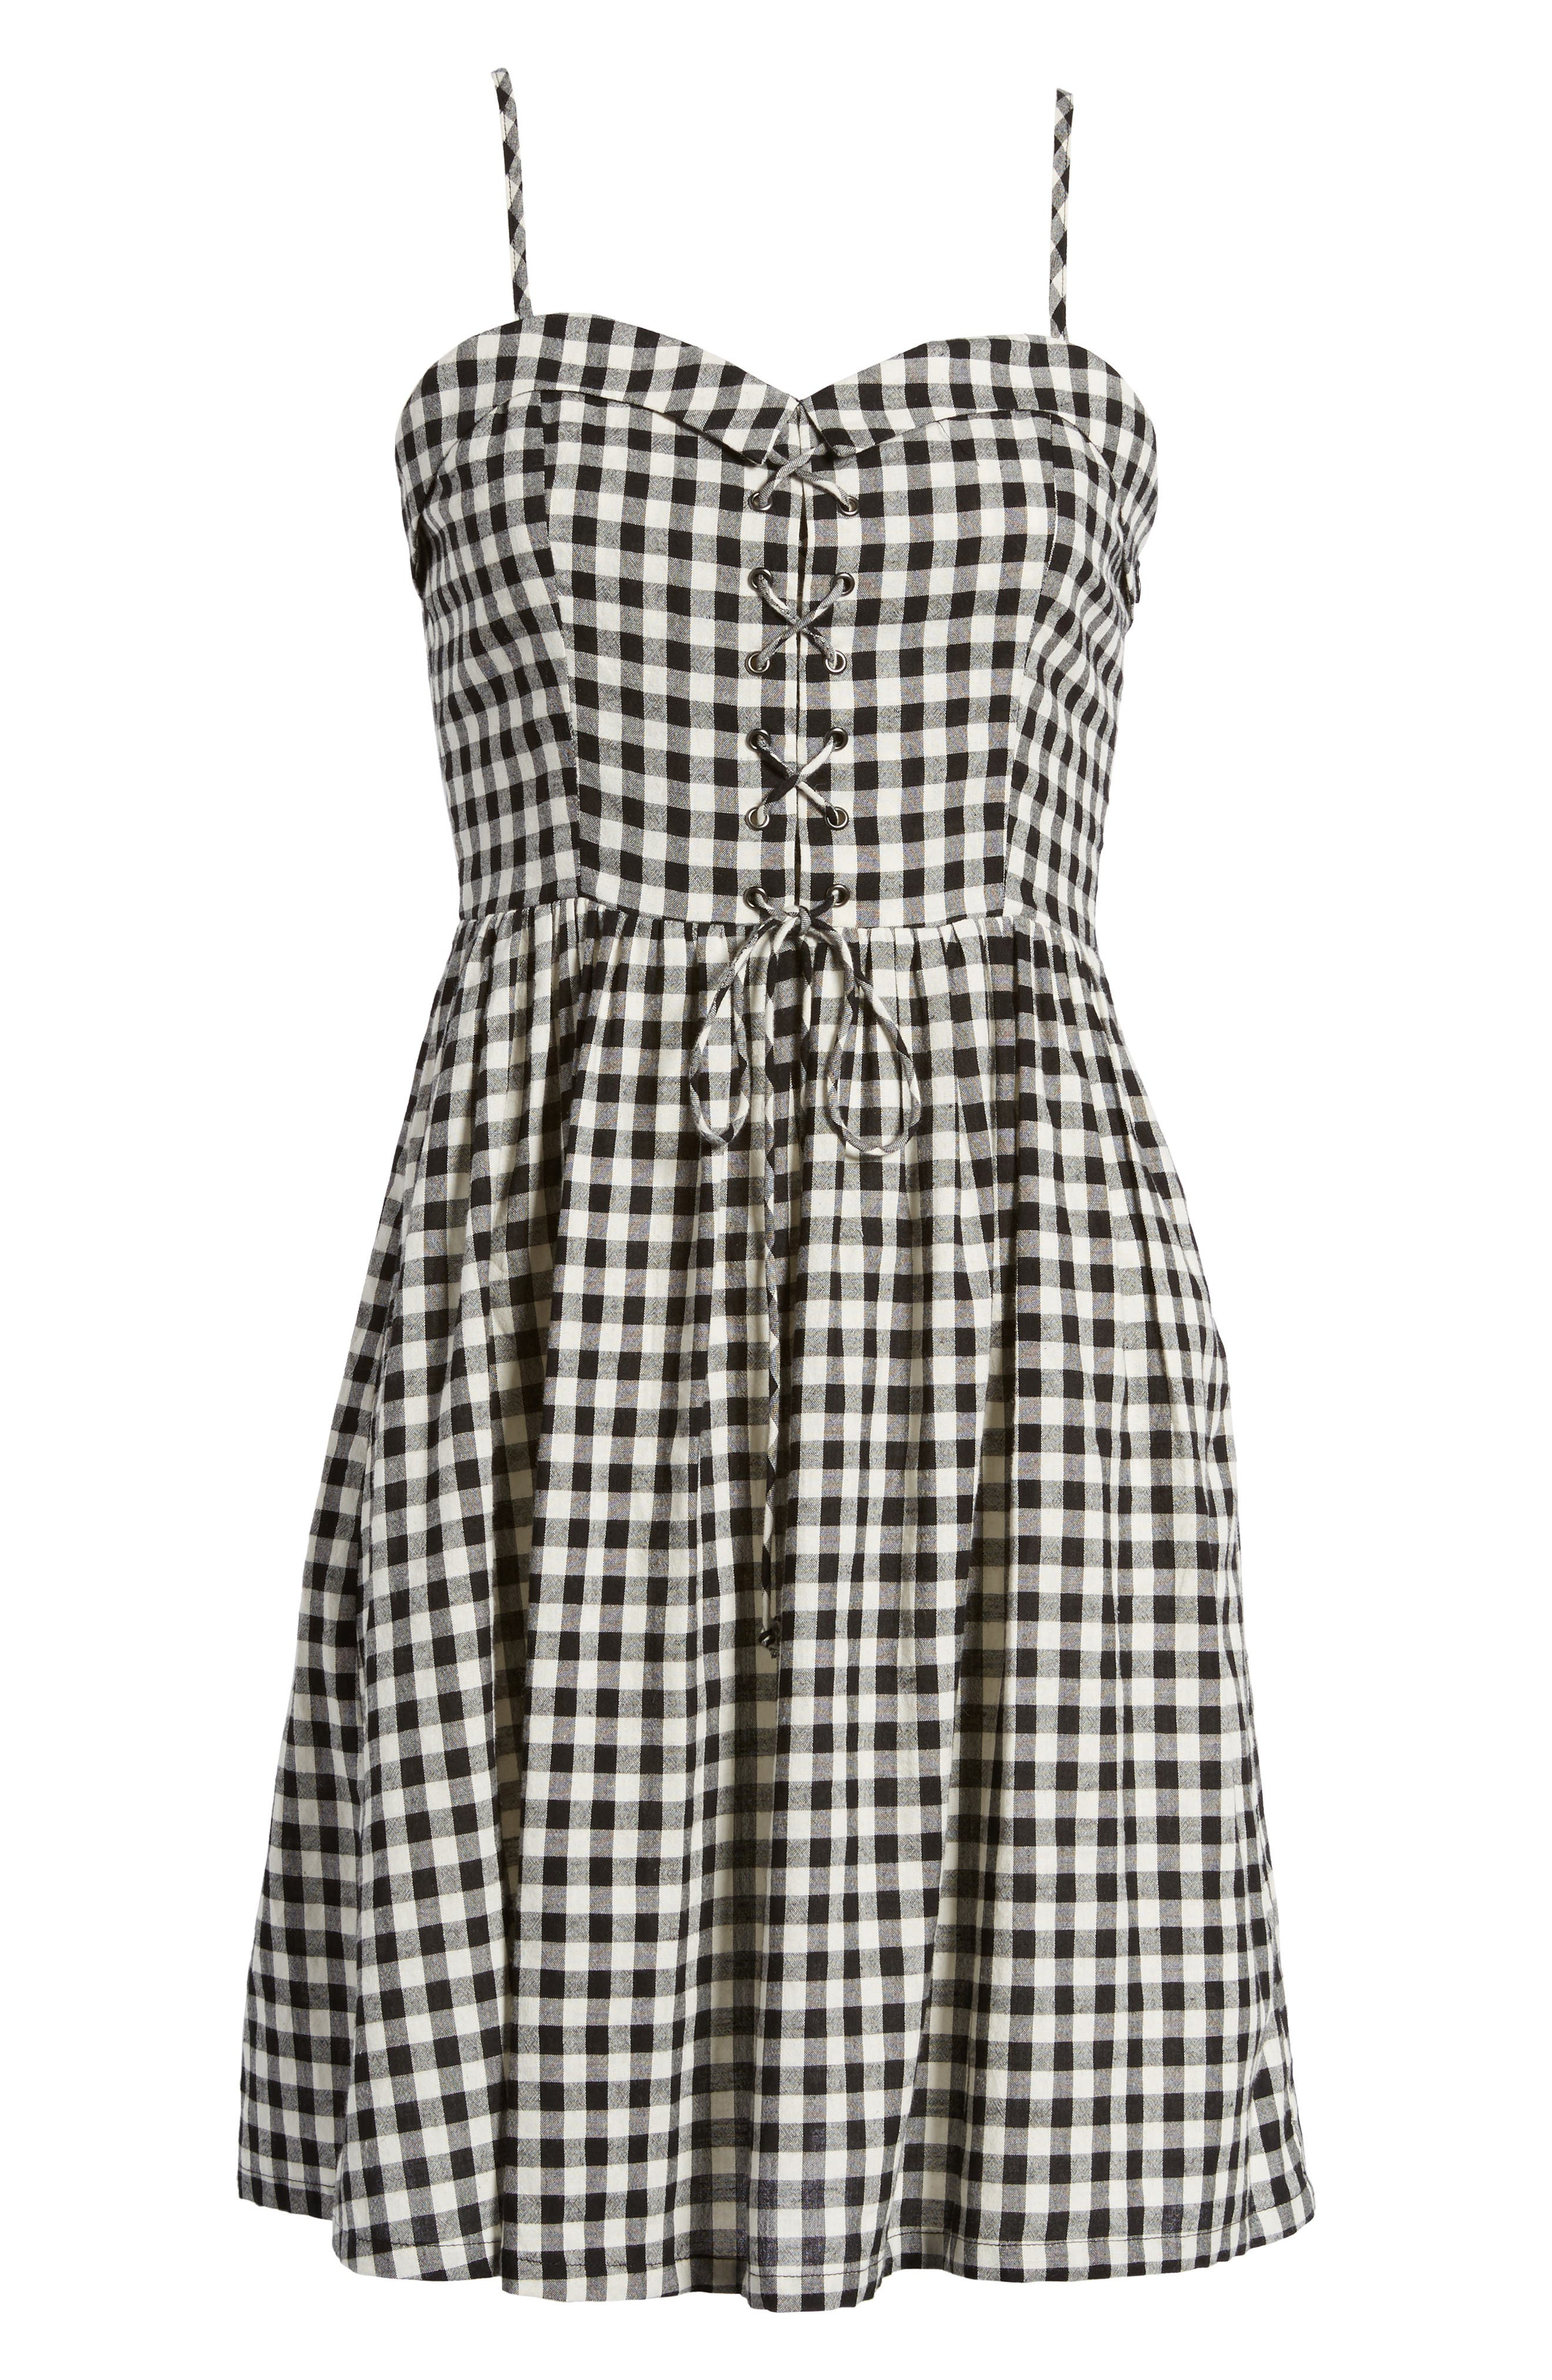 Lace-Up Gingham Dress,                             Alternate thumbnail 7, color,                             Black Gingham